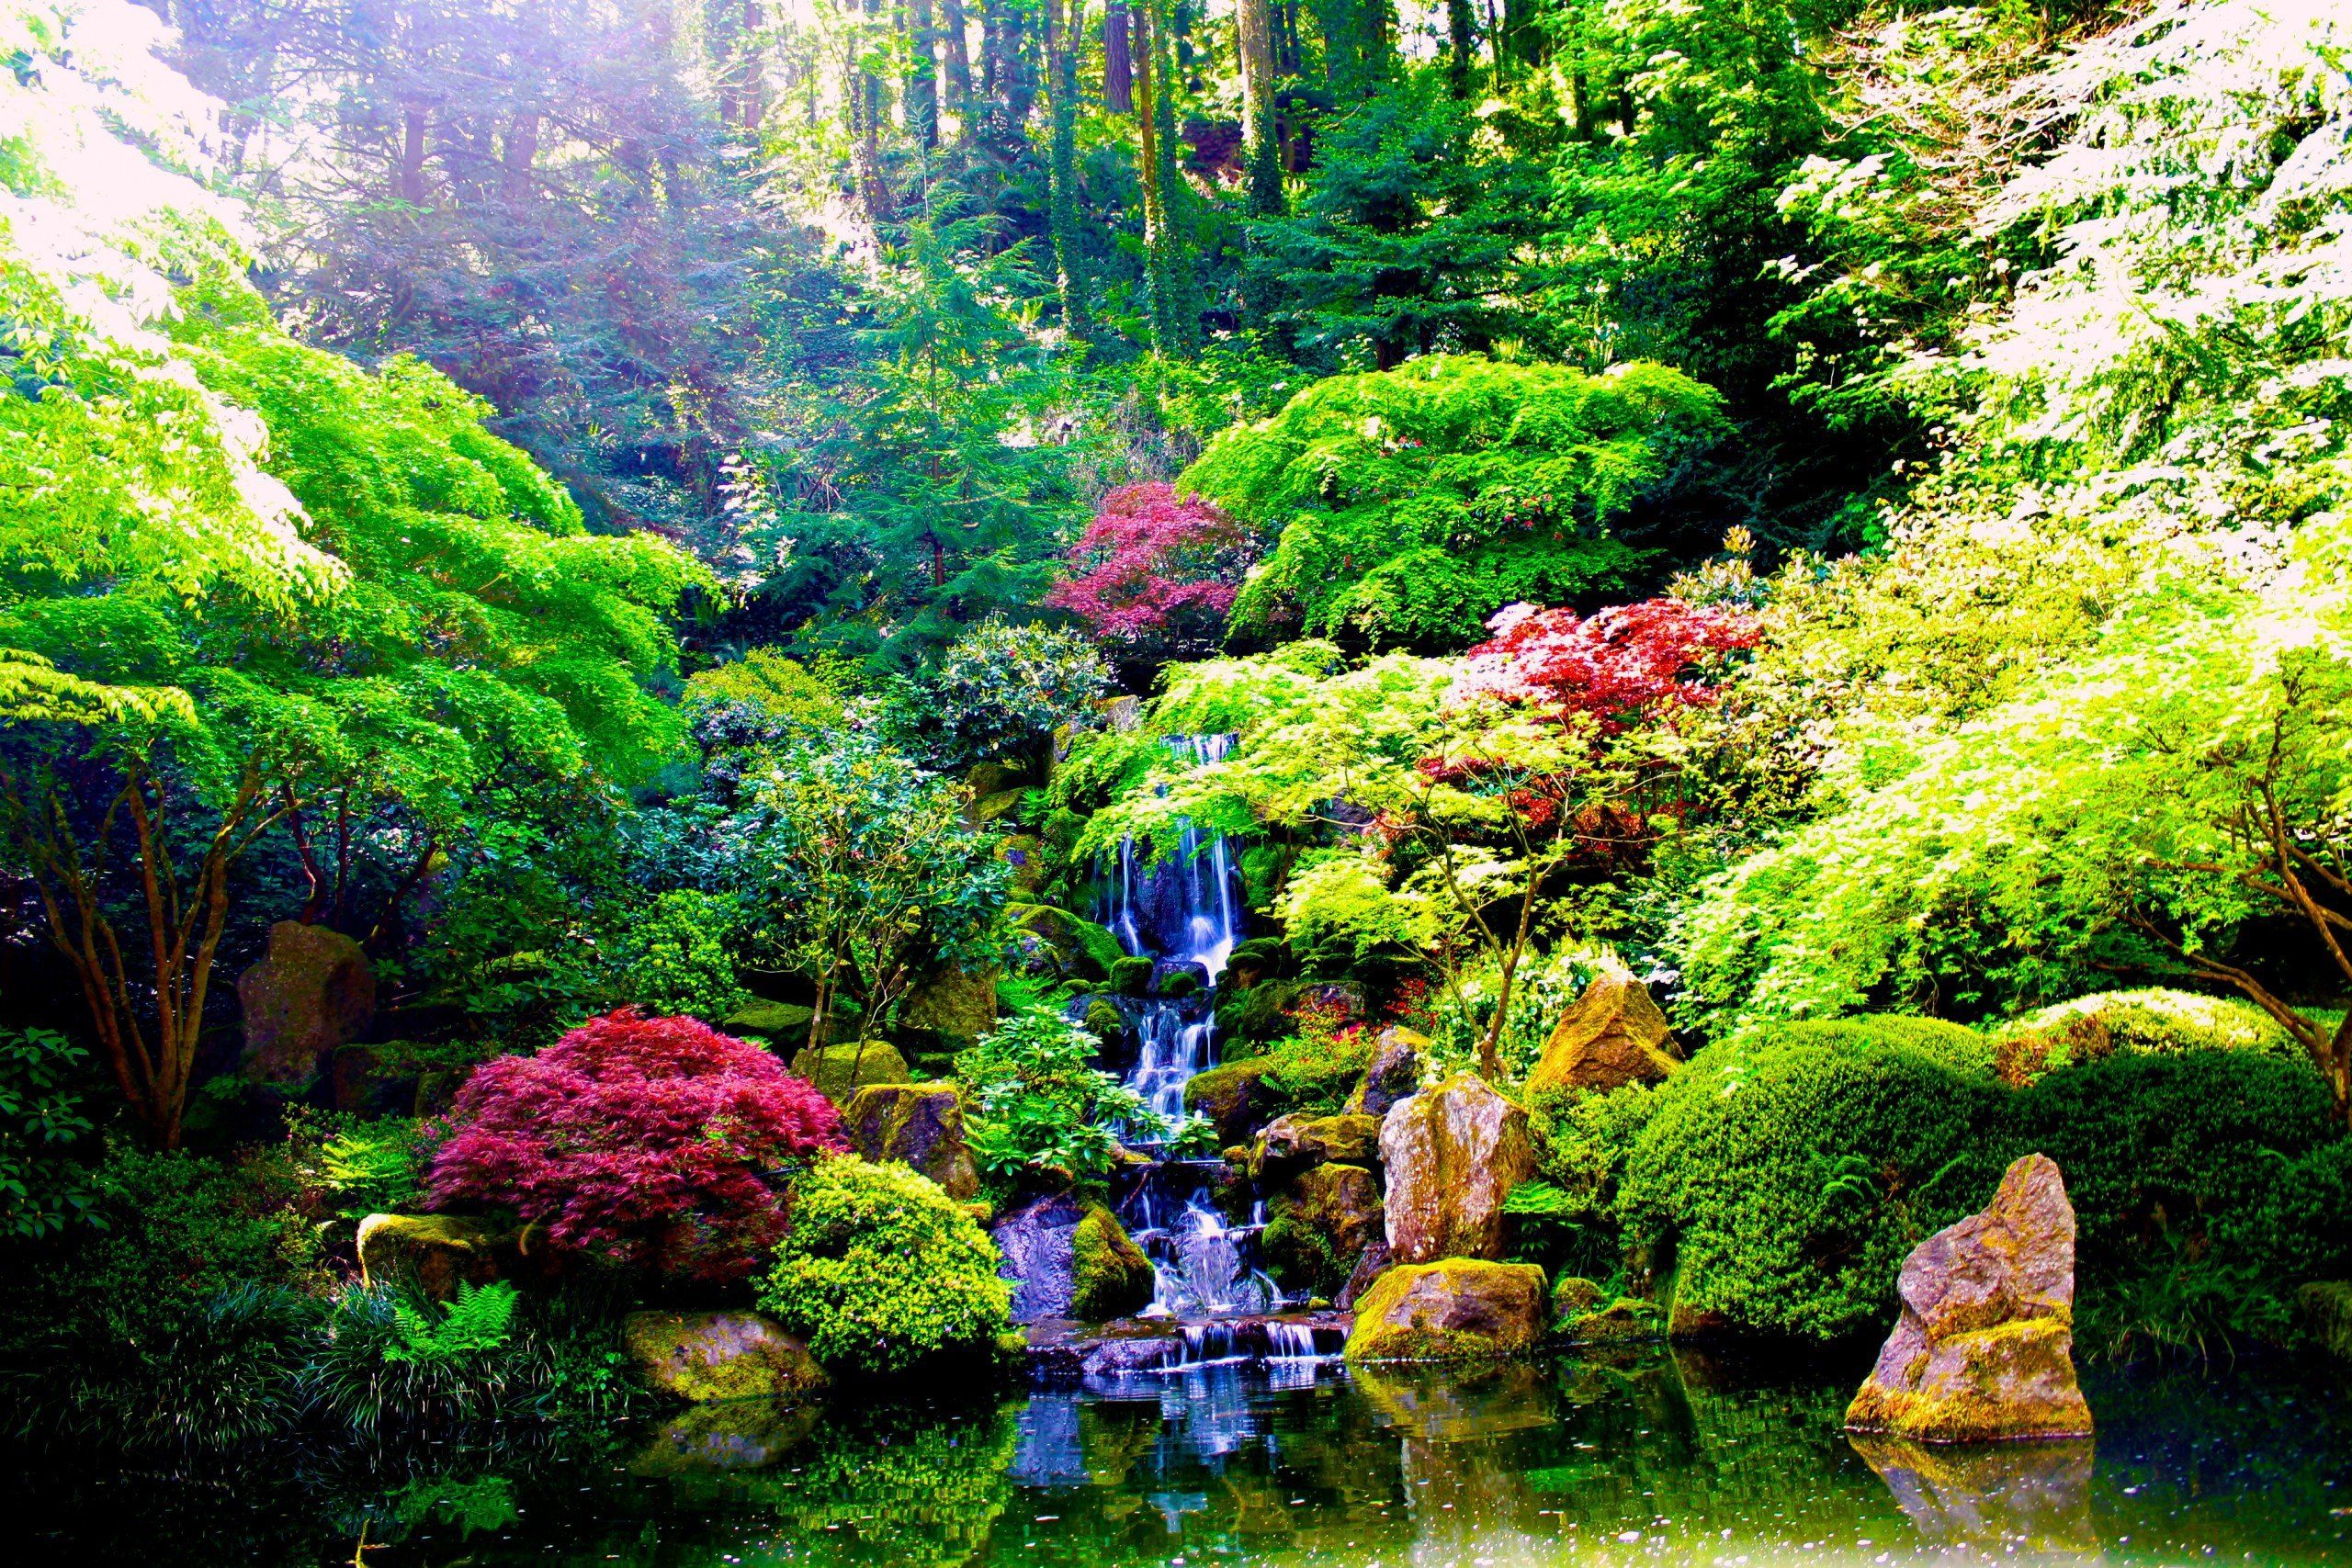 Zen garden wallpaper wallpapersafari for Zen garden waterfall